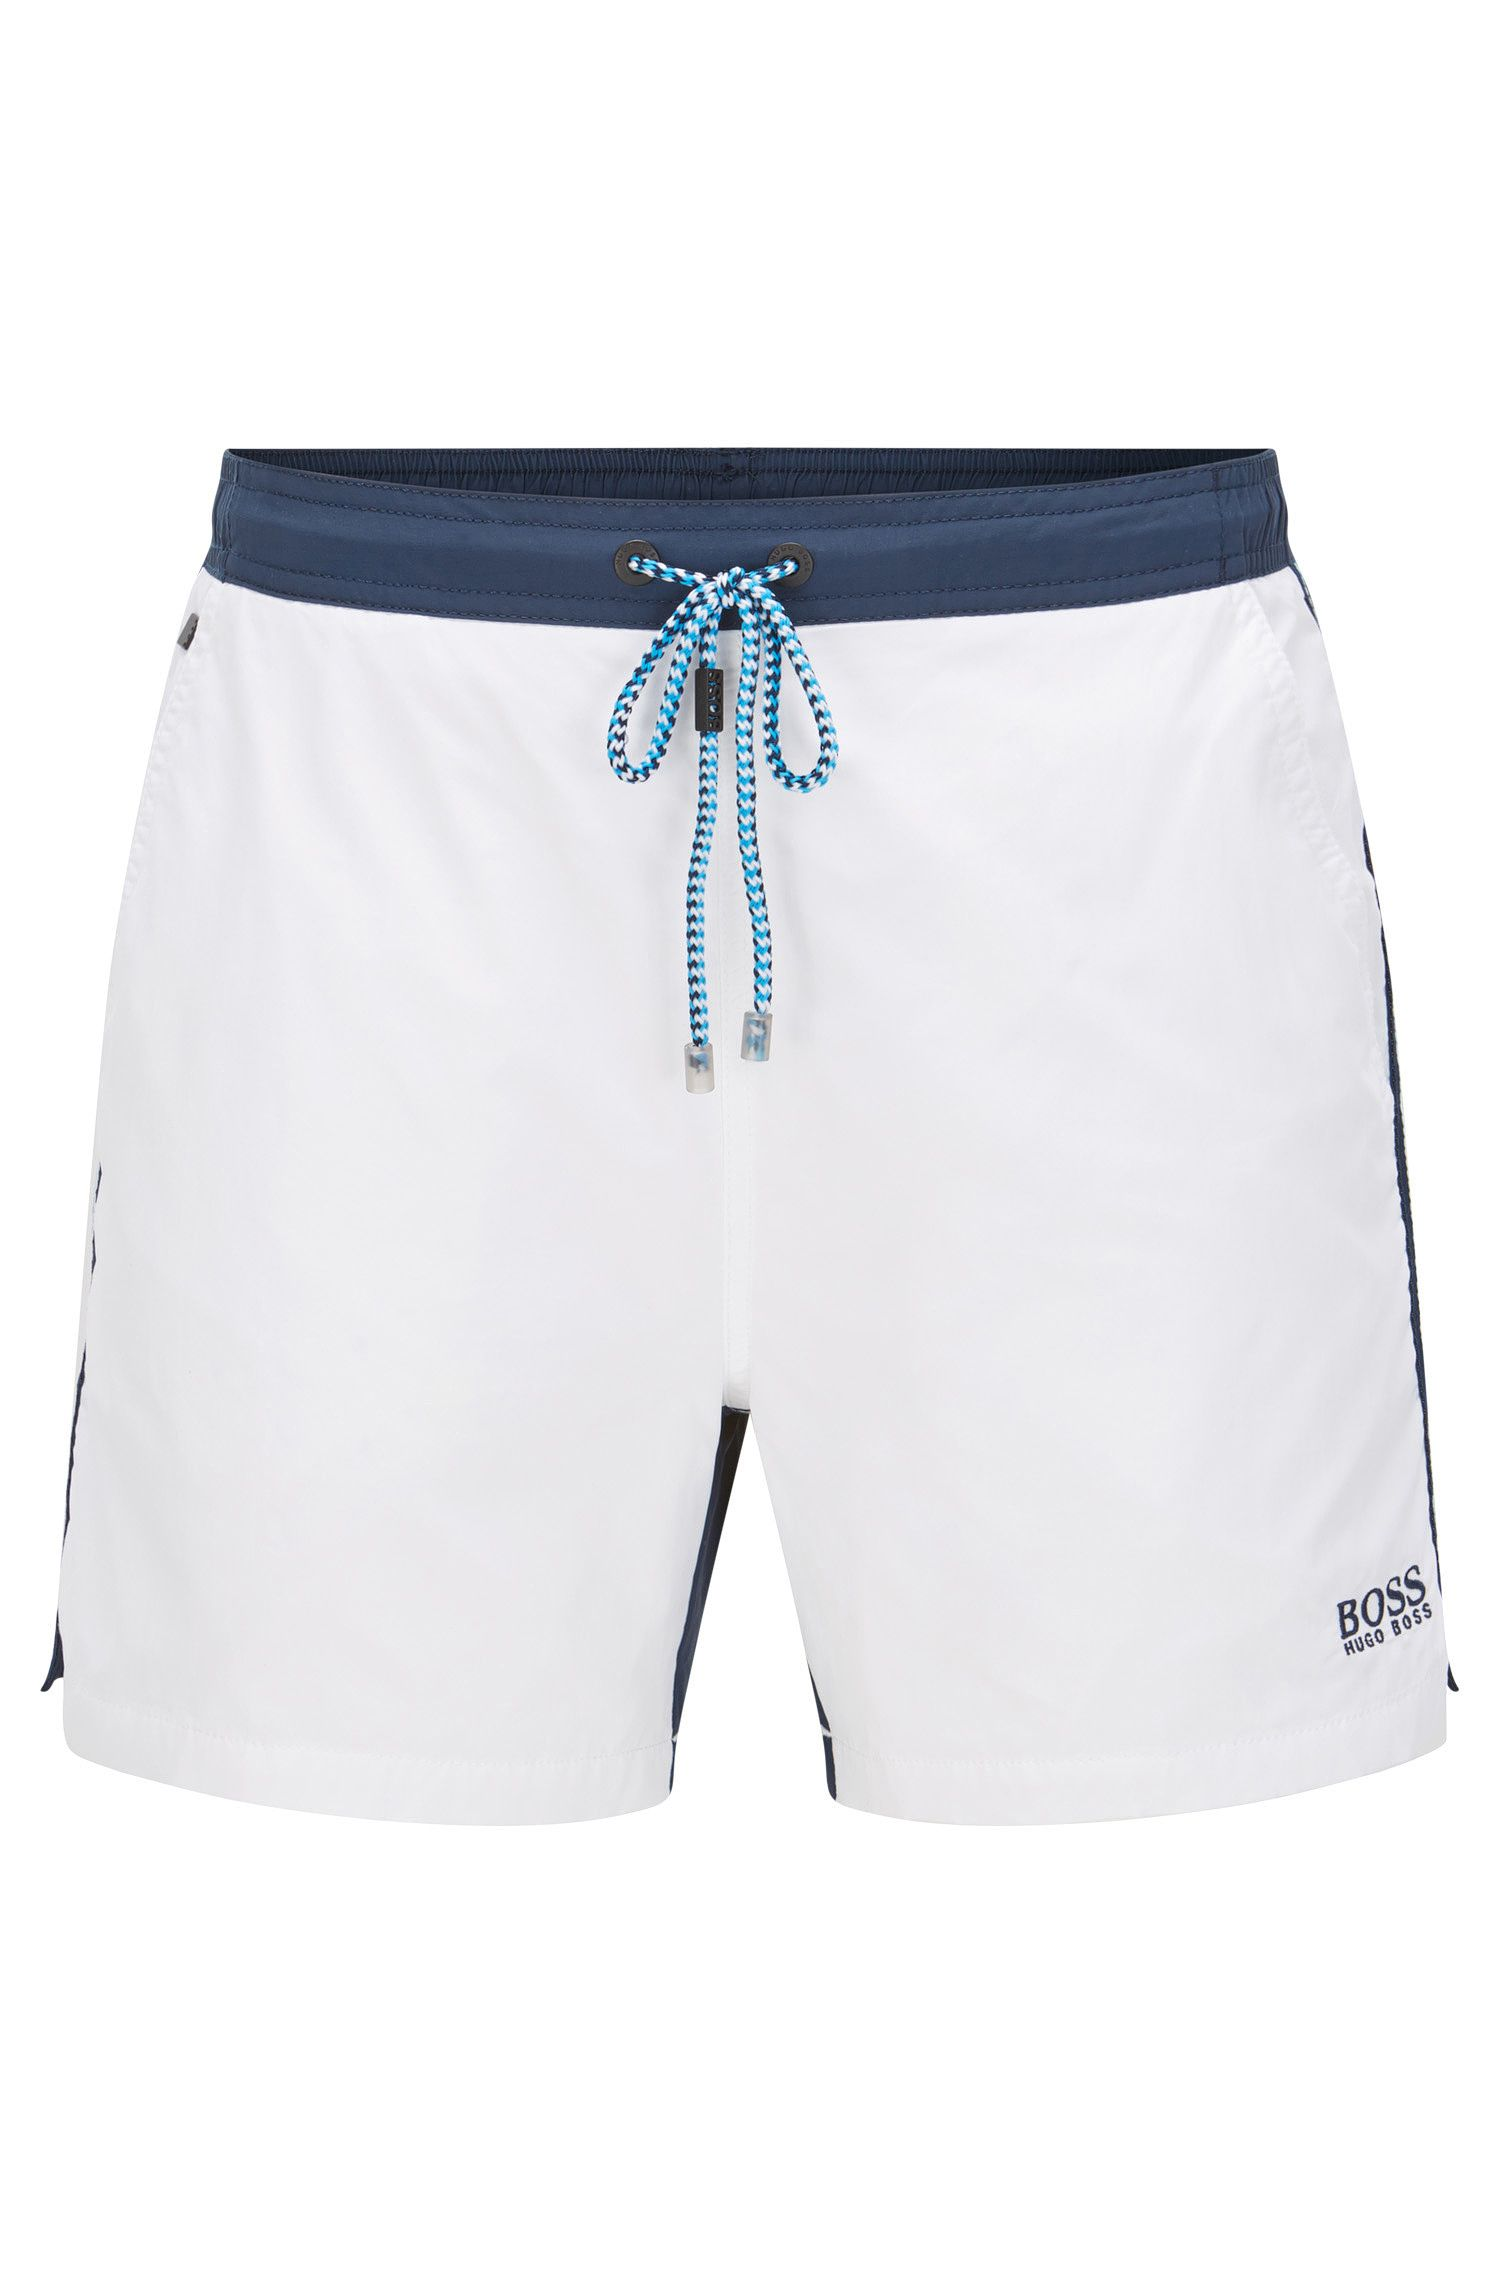 Quick Dry Patterned Swim Trunk | Snapper